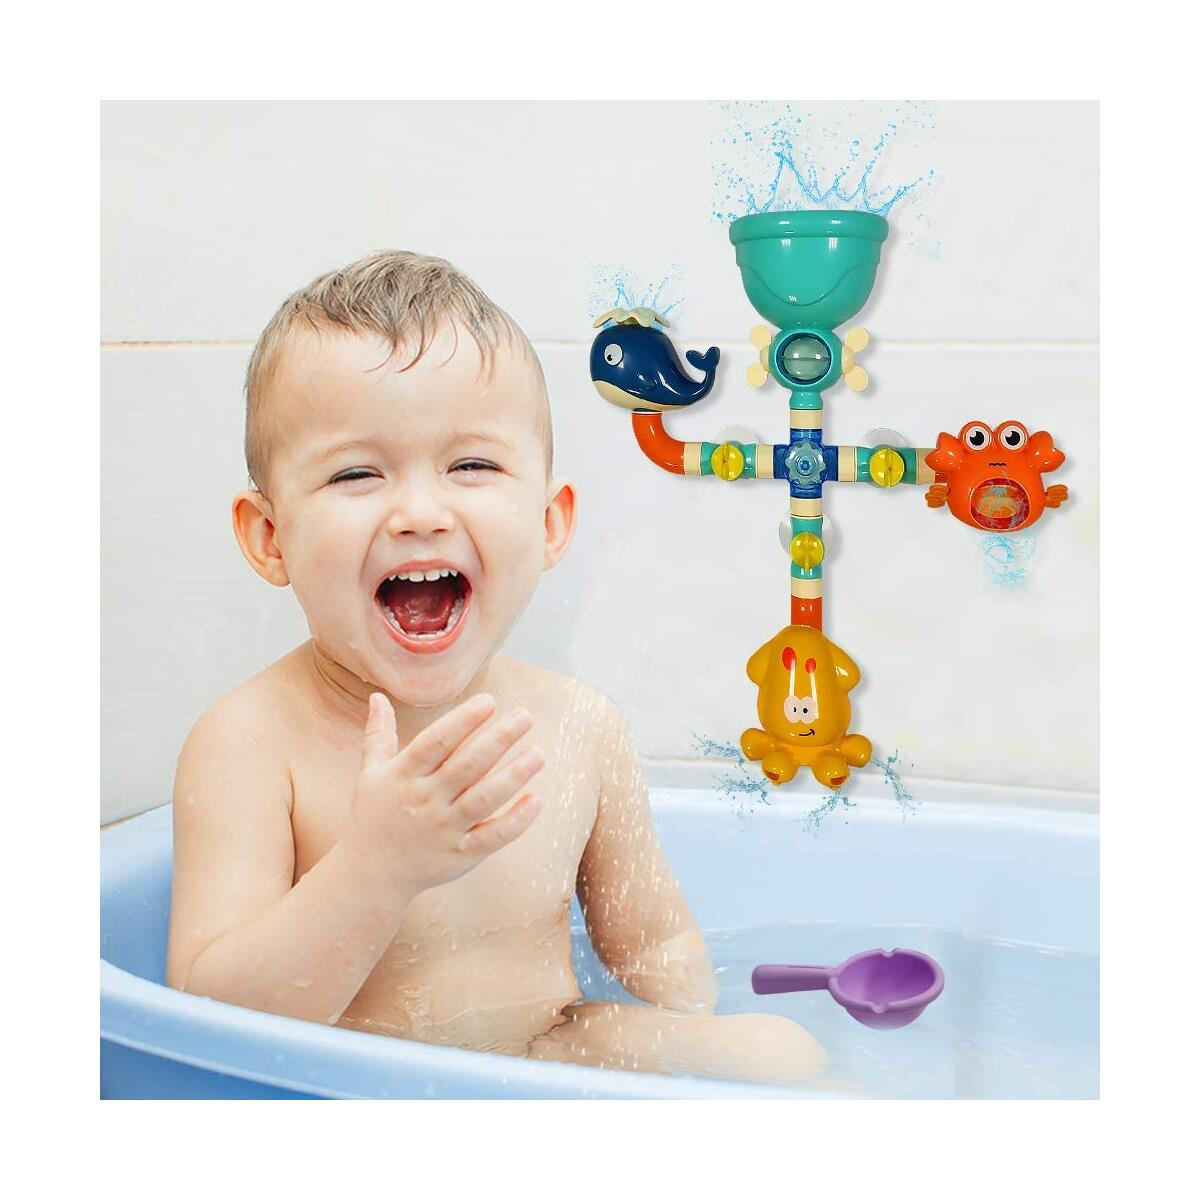 WISHTIME Bath Toys Bathtub Toys for 2 3 4 Year Old Kids Toddlers Bath Wall Toy Waterfall Fill Spin and Flow Non Toxic Birthday Gift Ideas Color Box